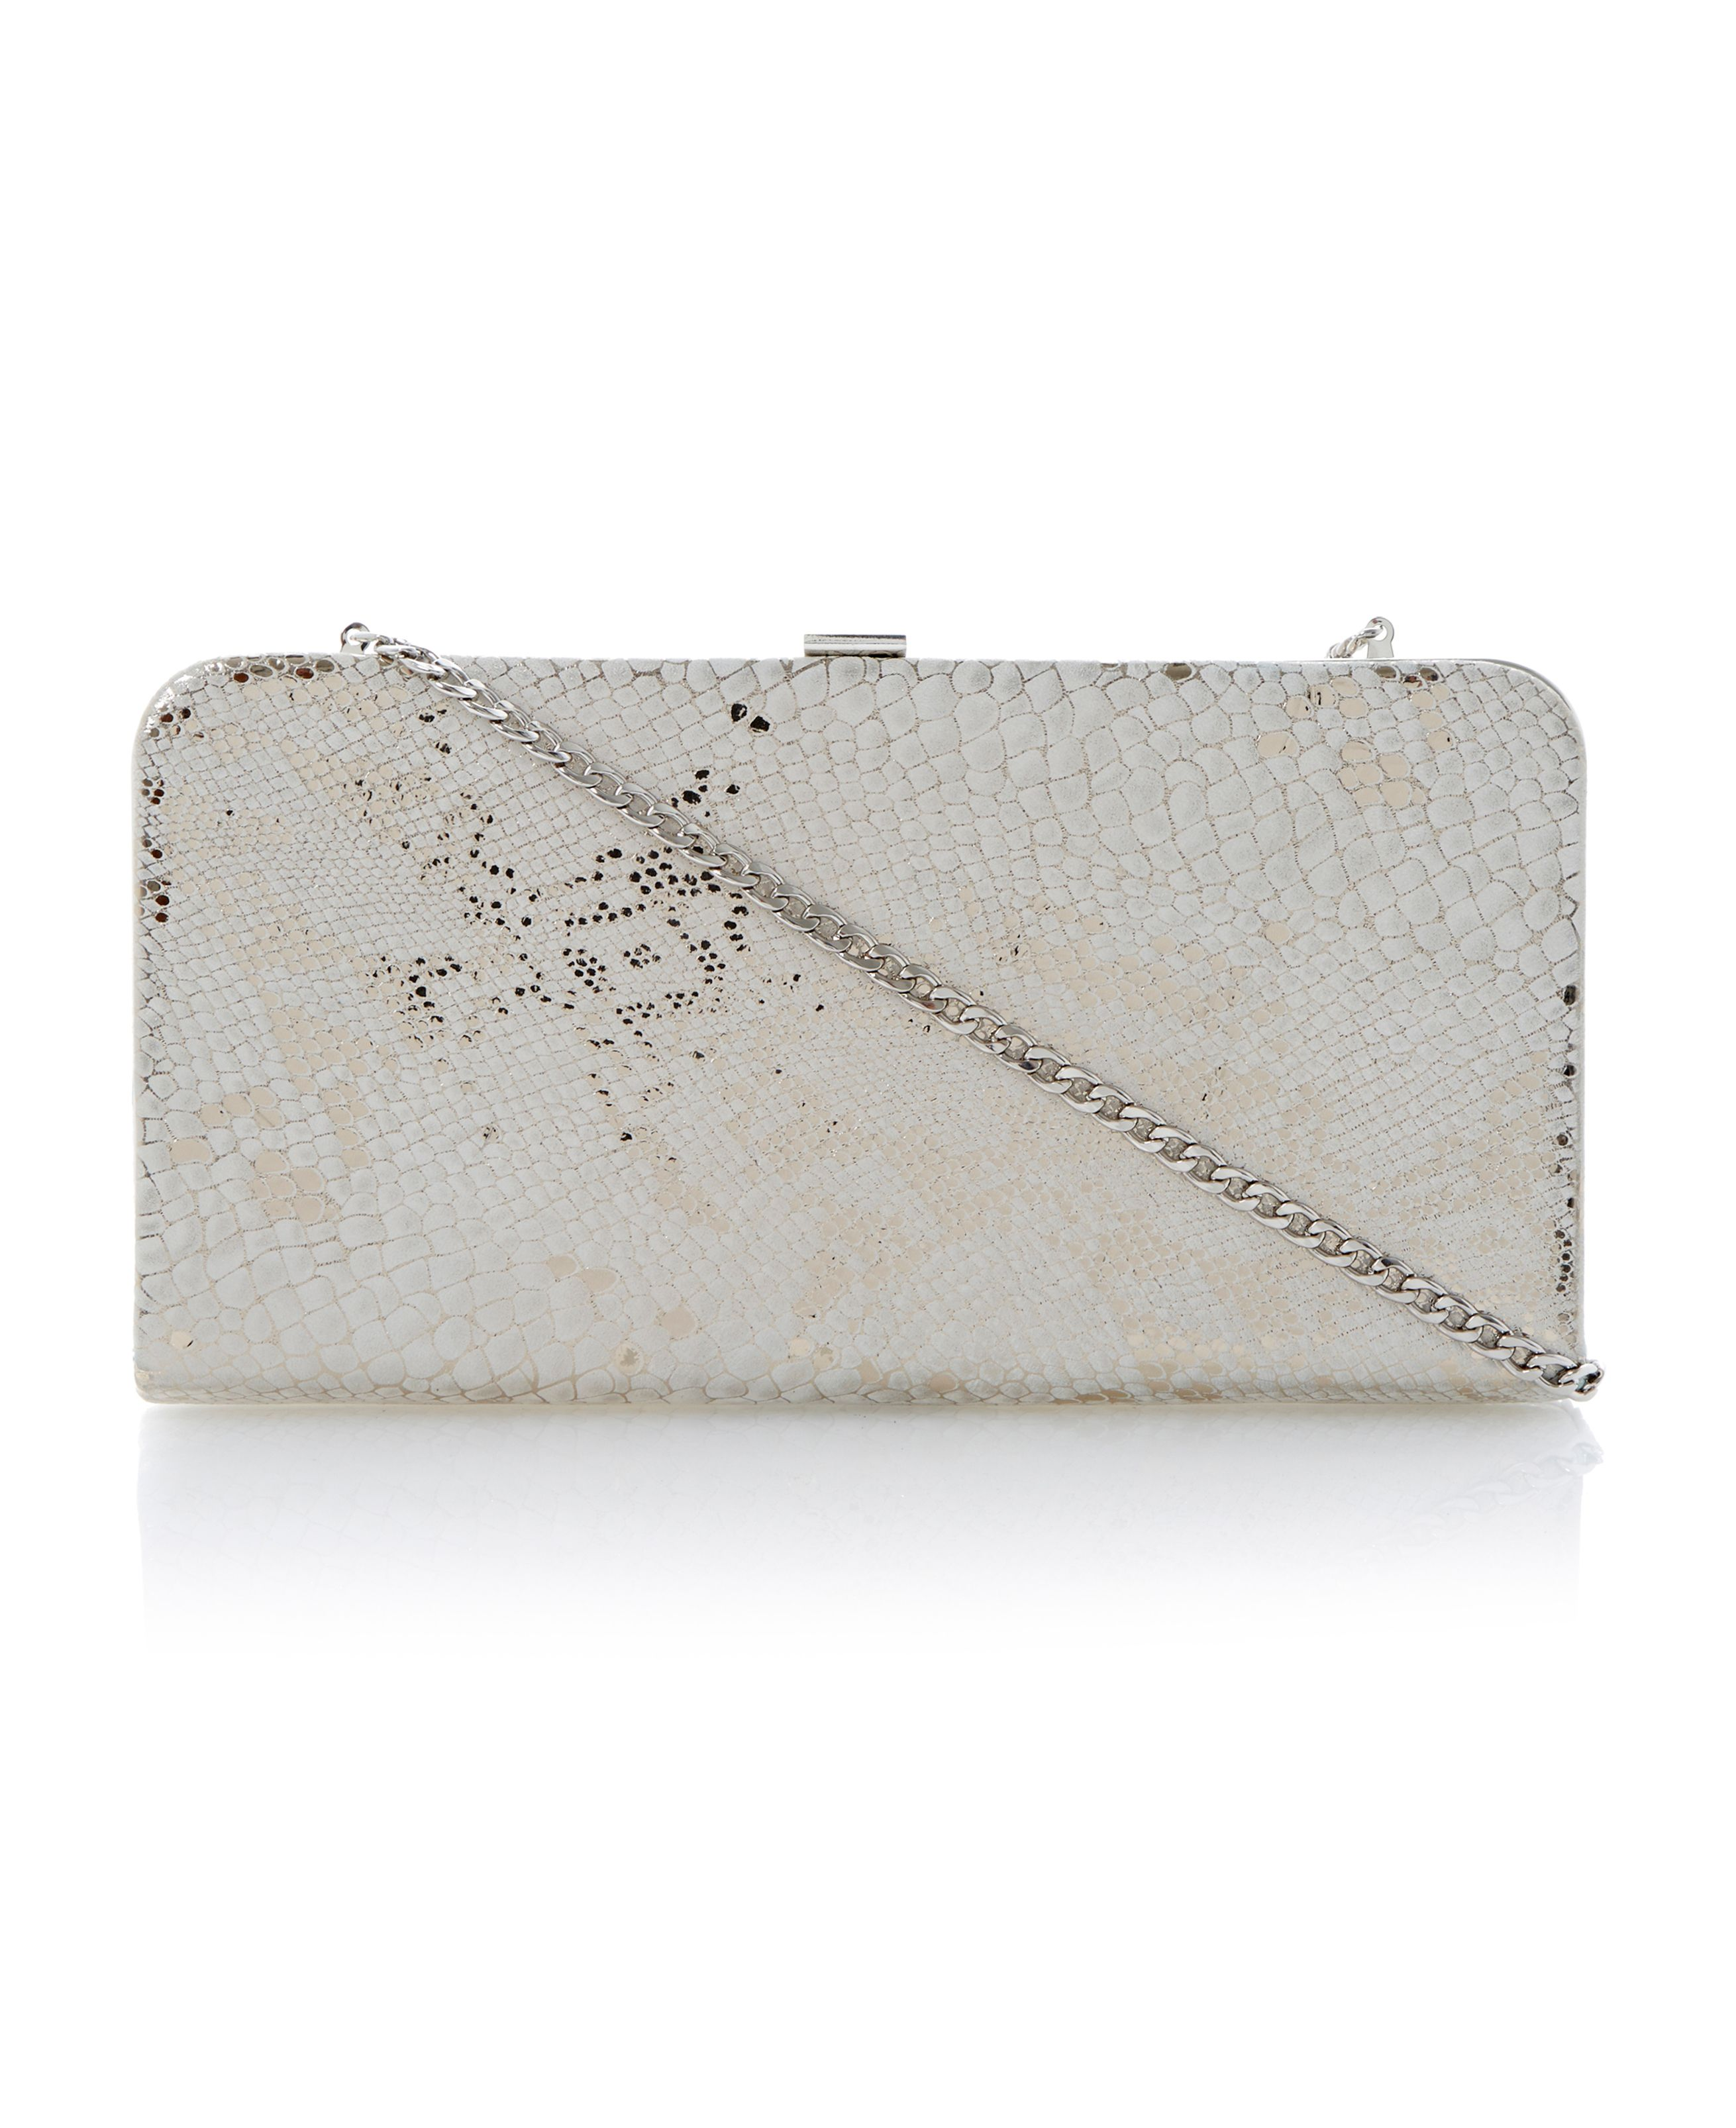 Ballie snake print leather clutch bag